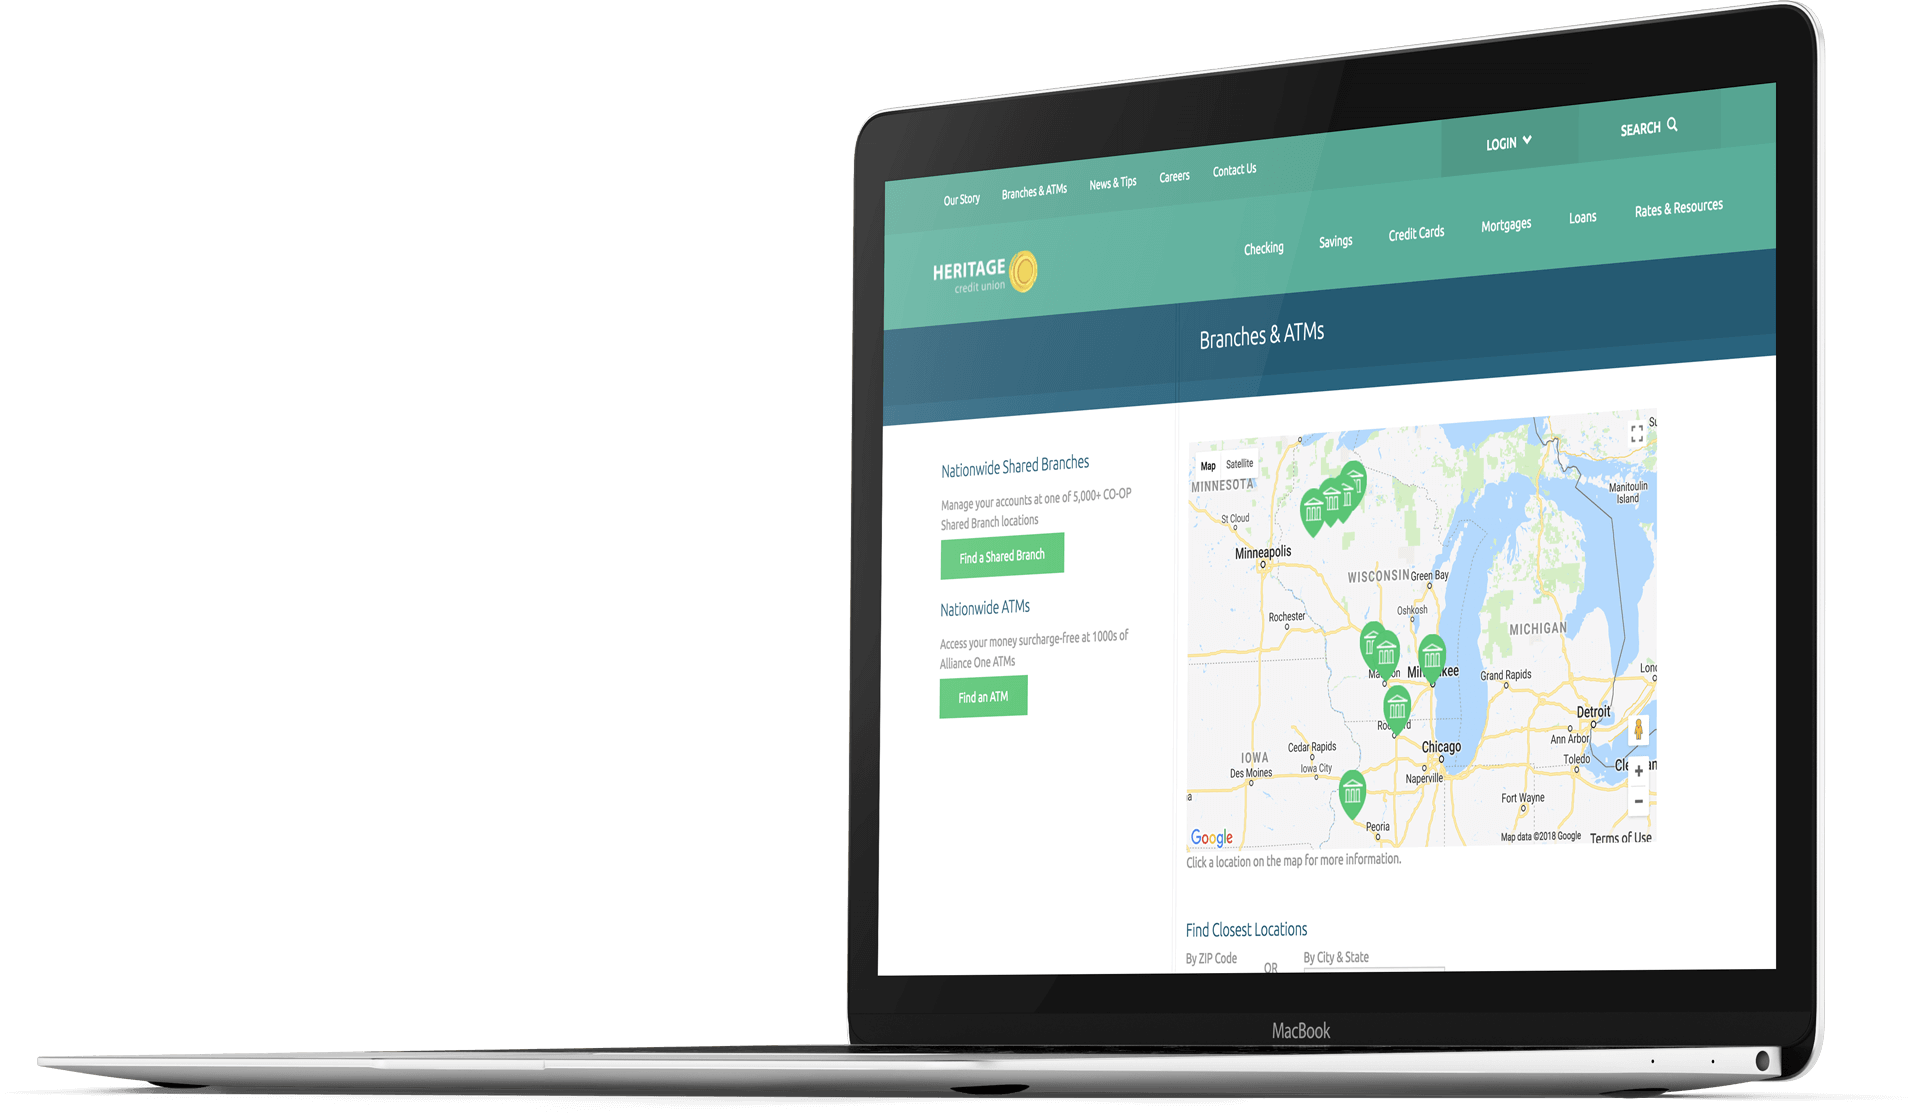 Bank website design for Heritage Credit Union on a laptop screen